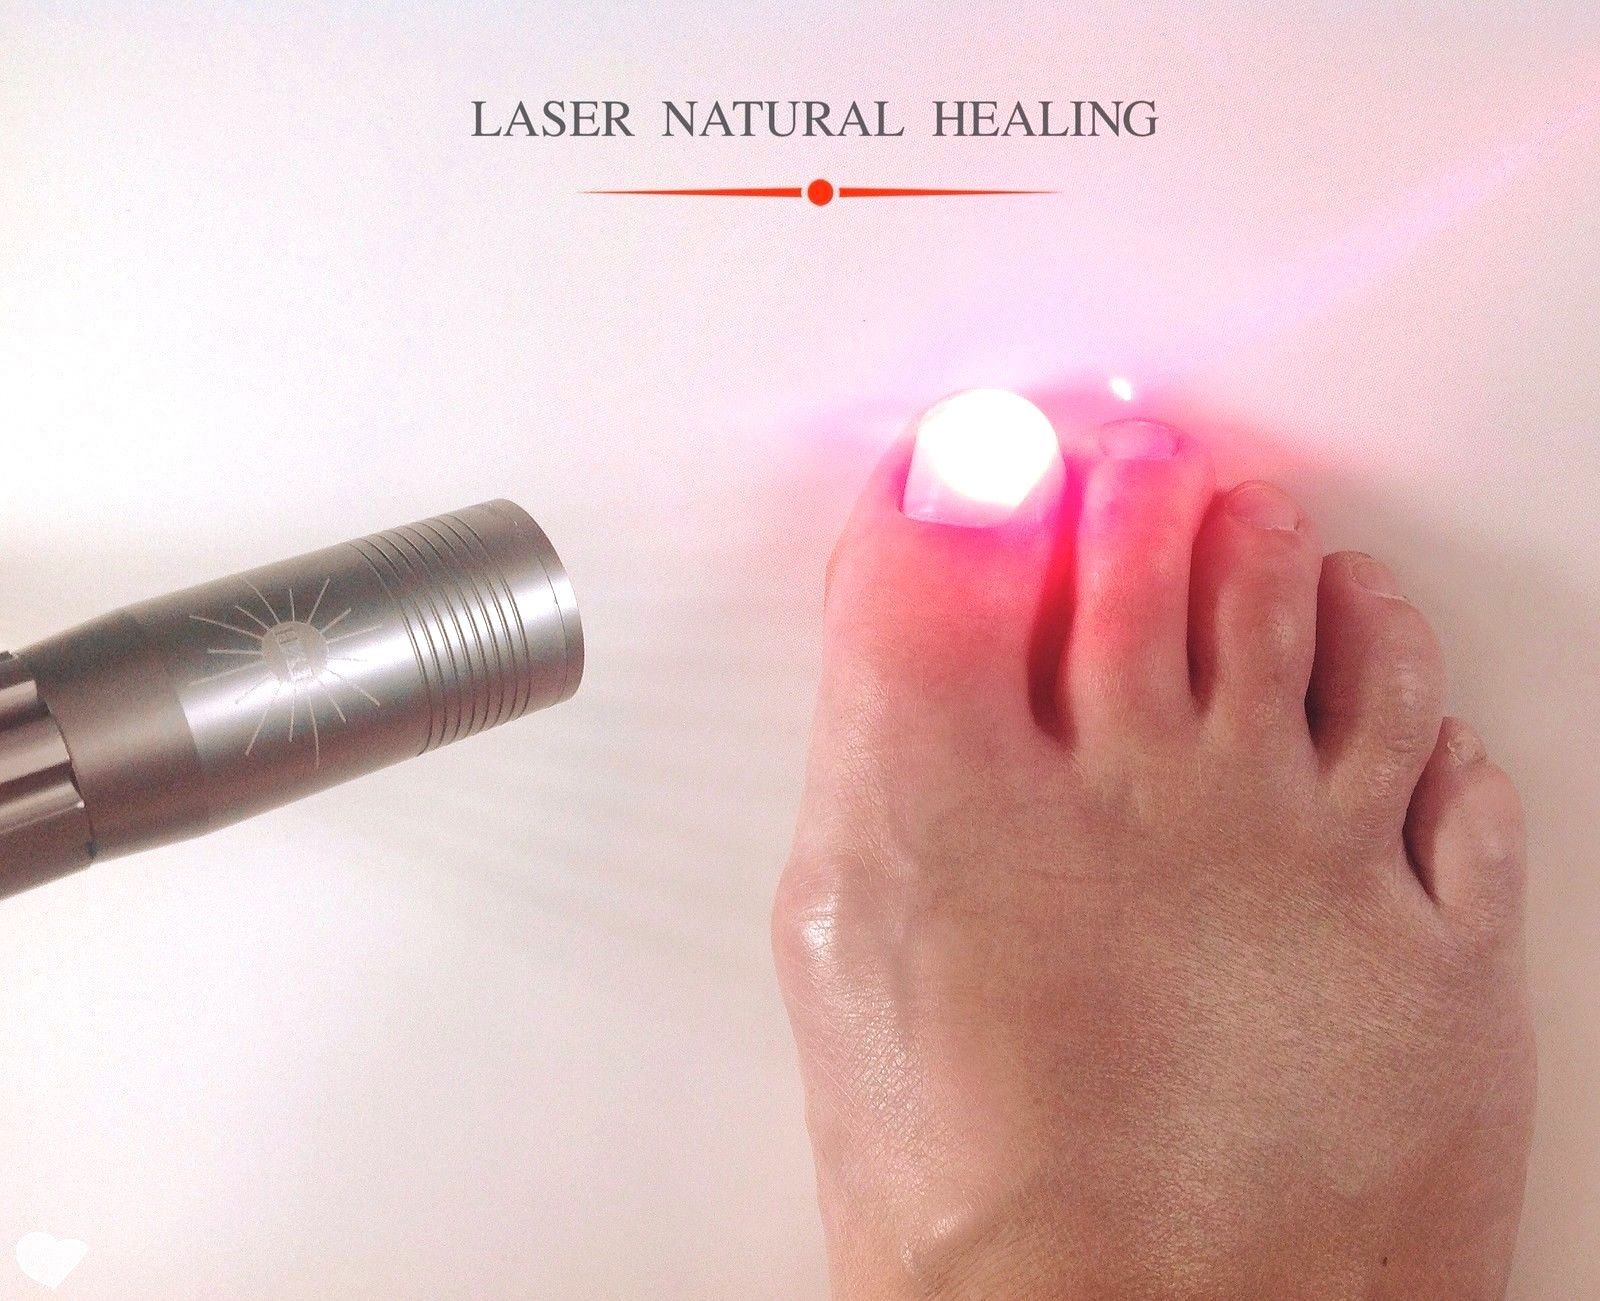 Cold Laser Therapy Kit Cts Pain Relief Lnh Pro 50